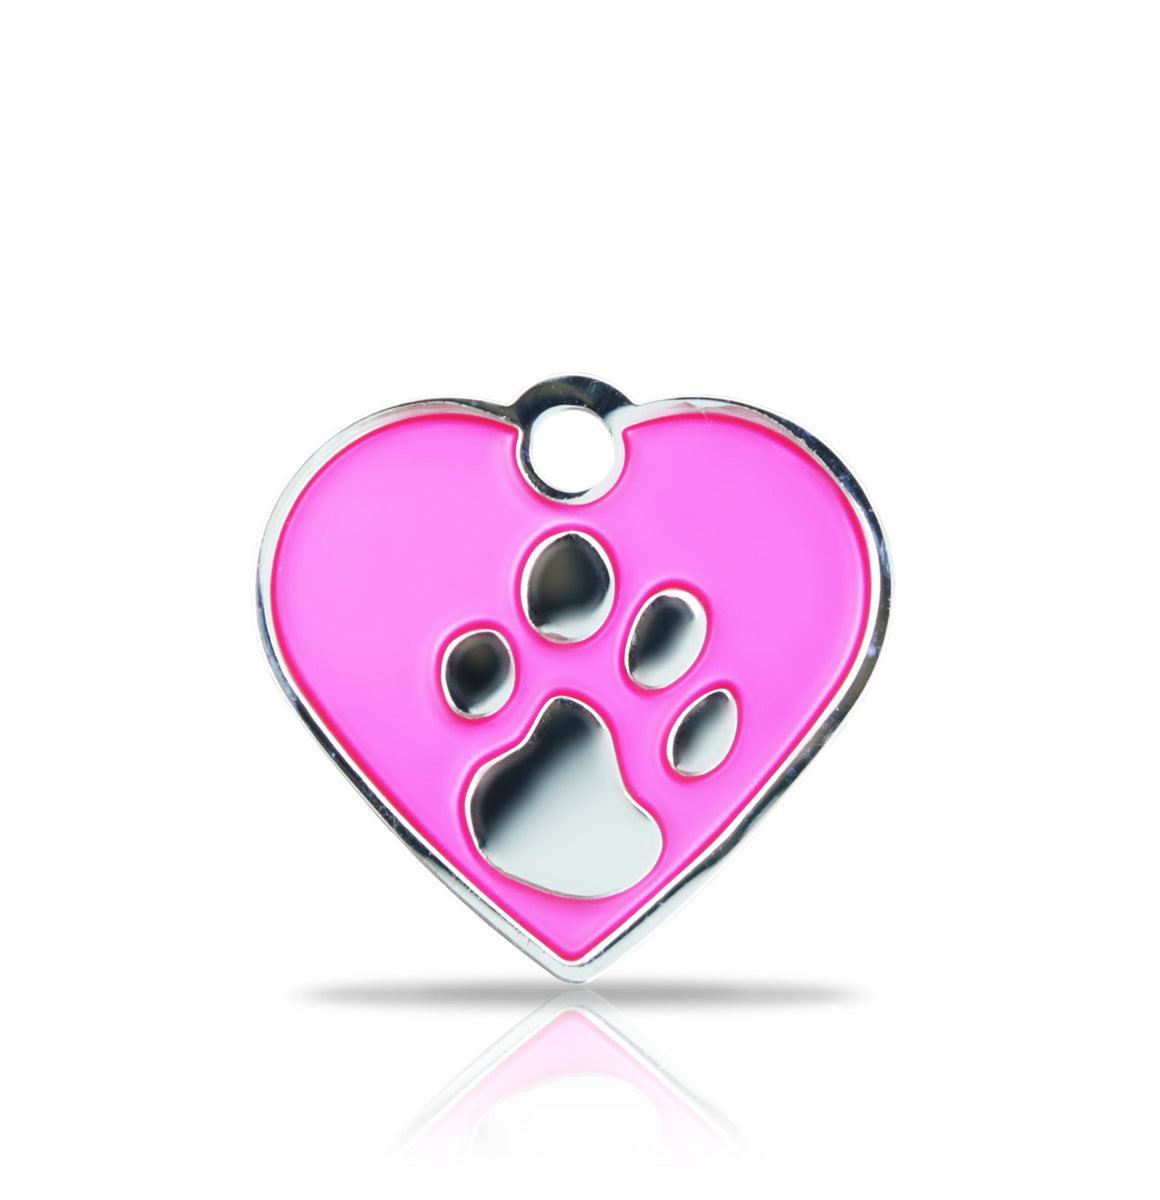 TaggIT Elegance Small Heart Pink & Silver iMarc Engraving Tag